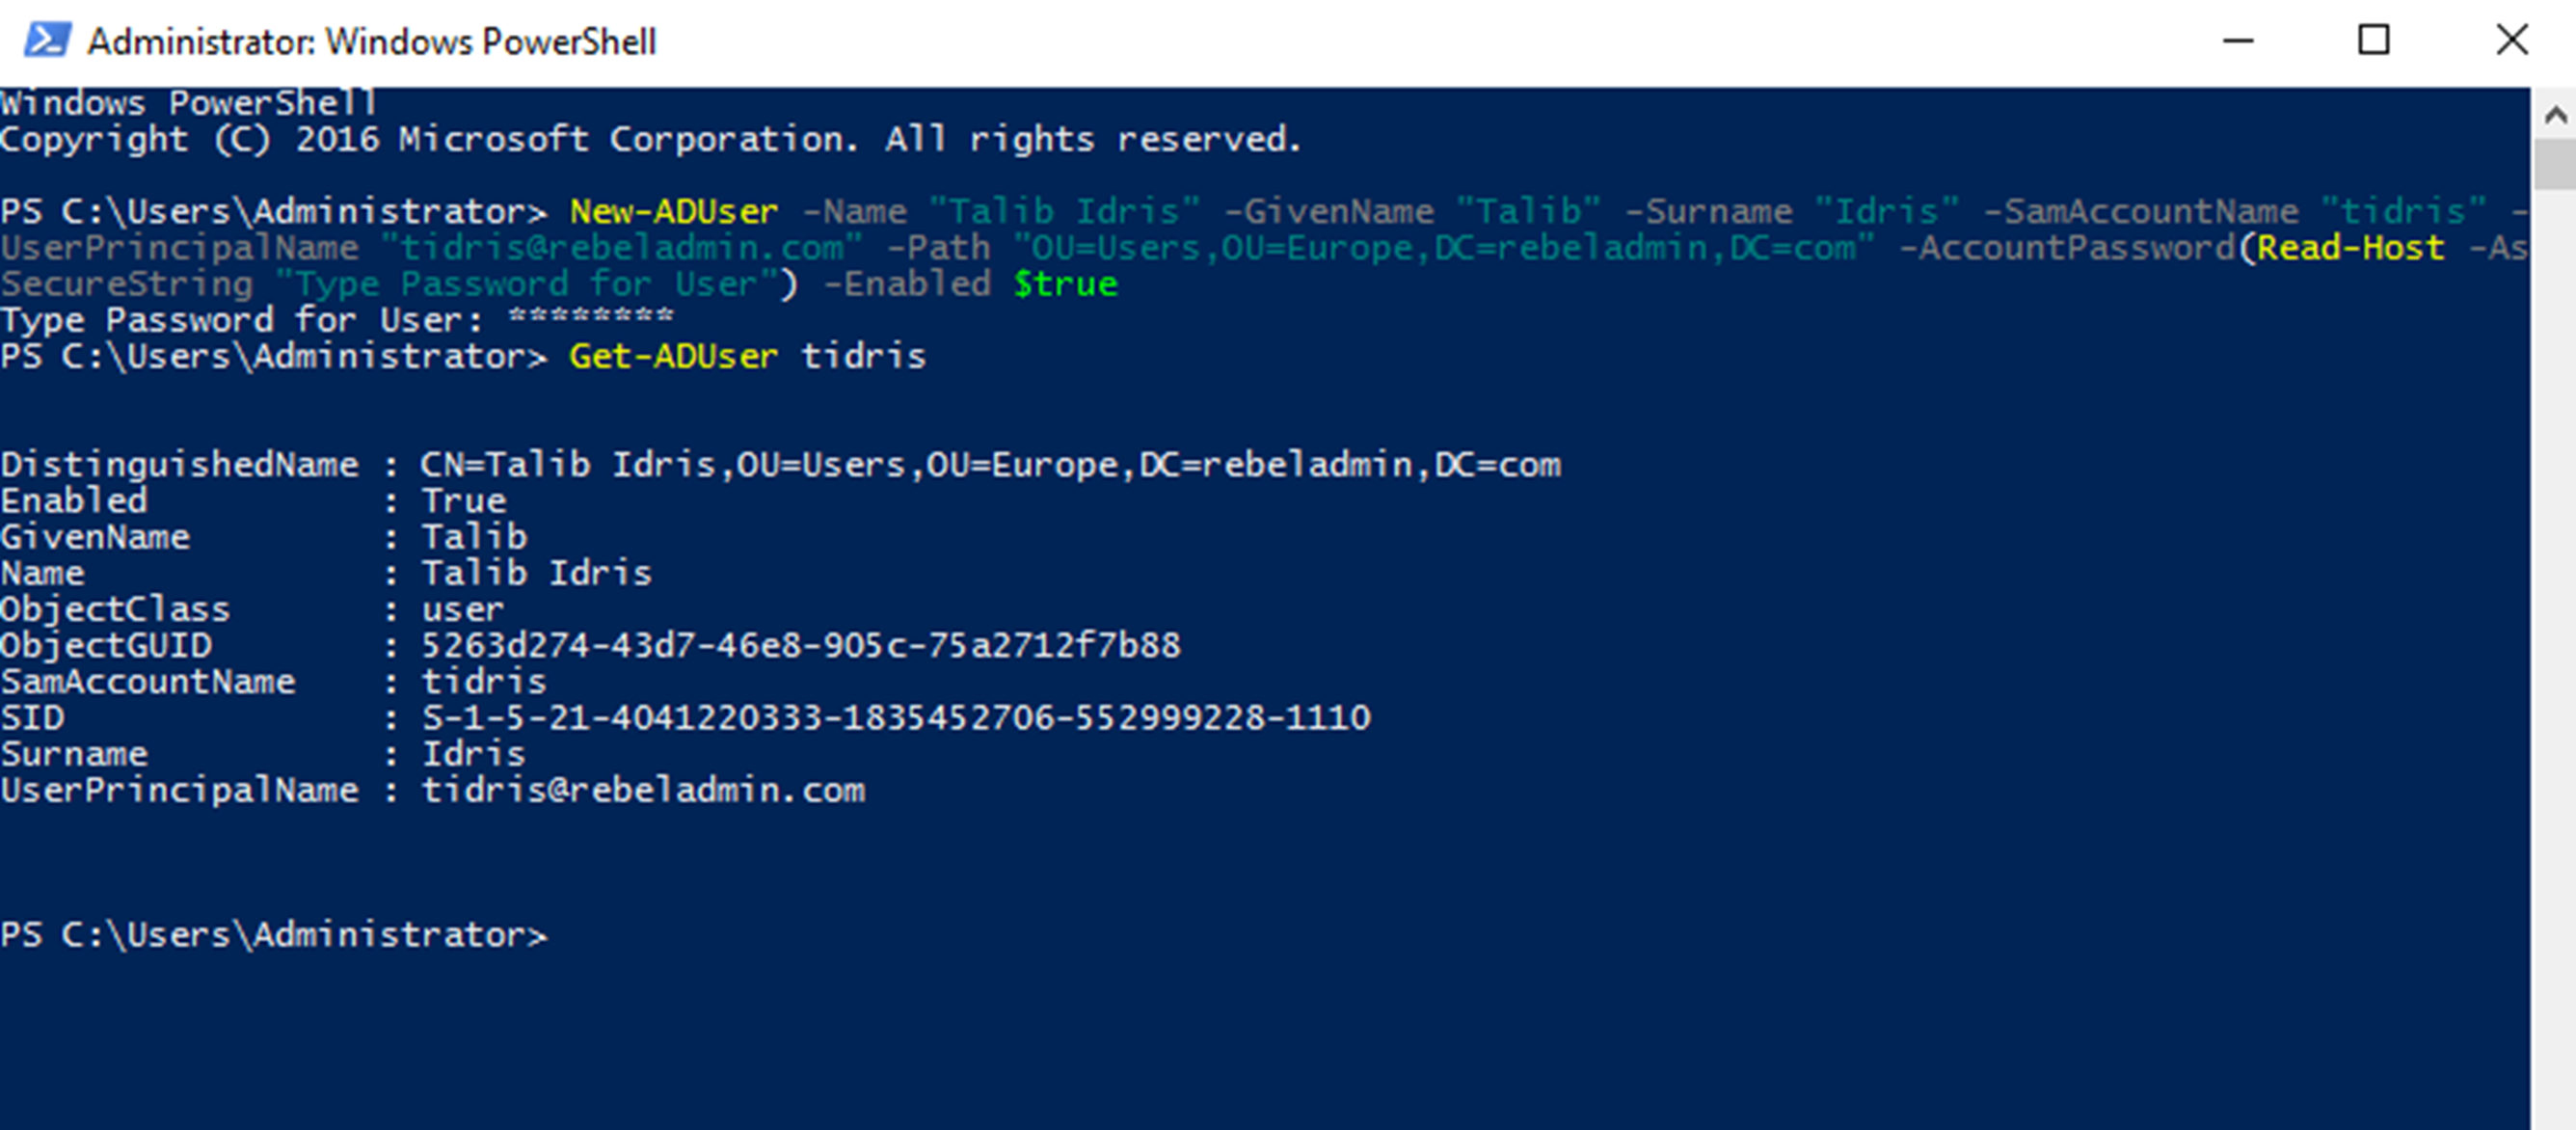 Create Active Directory User Objects using PowerShell - RebelAdmin com